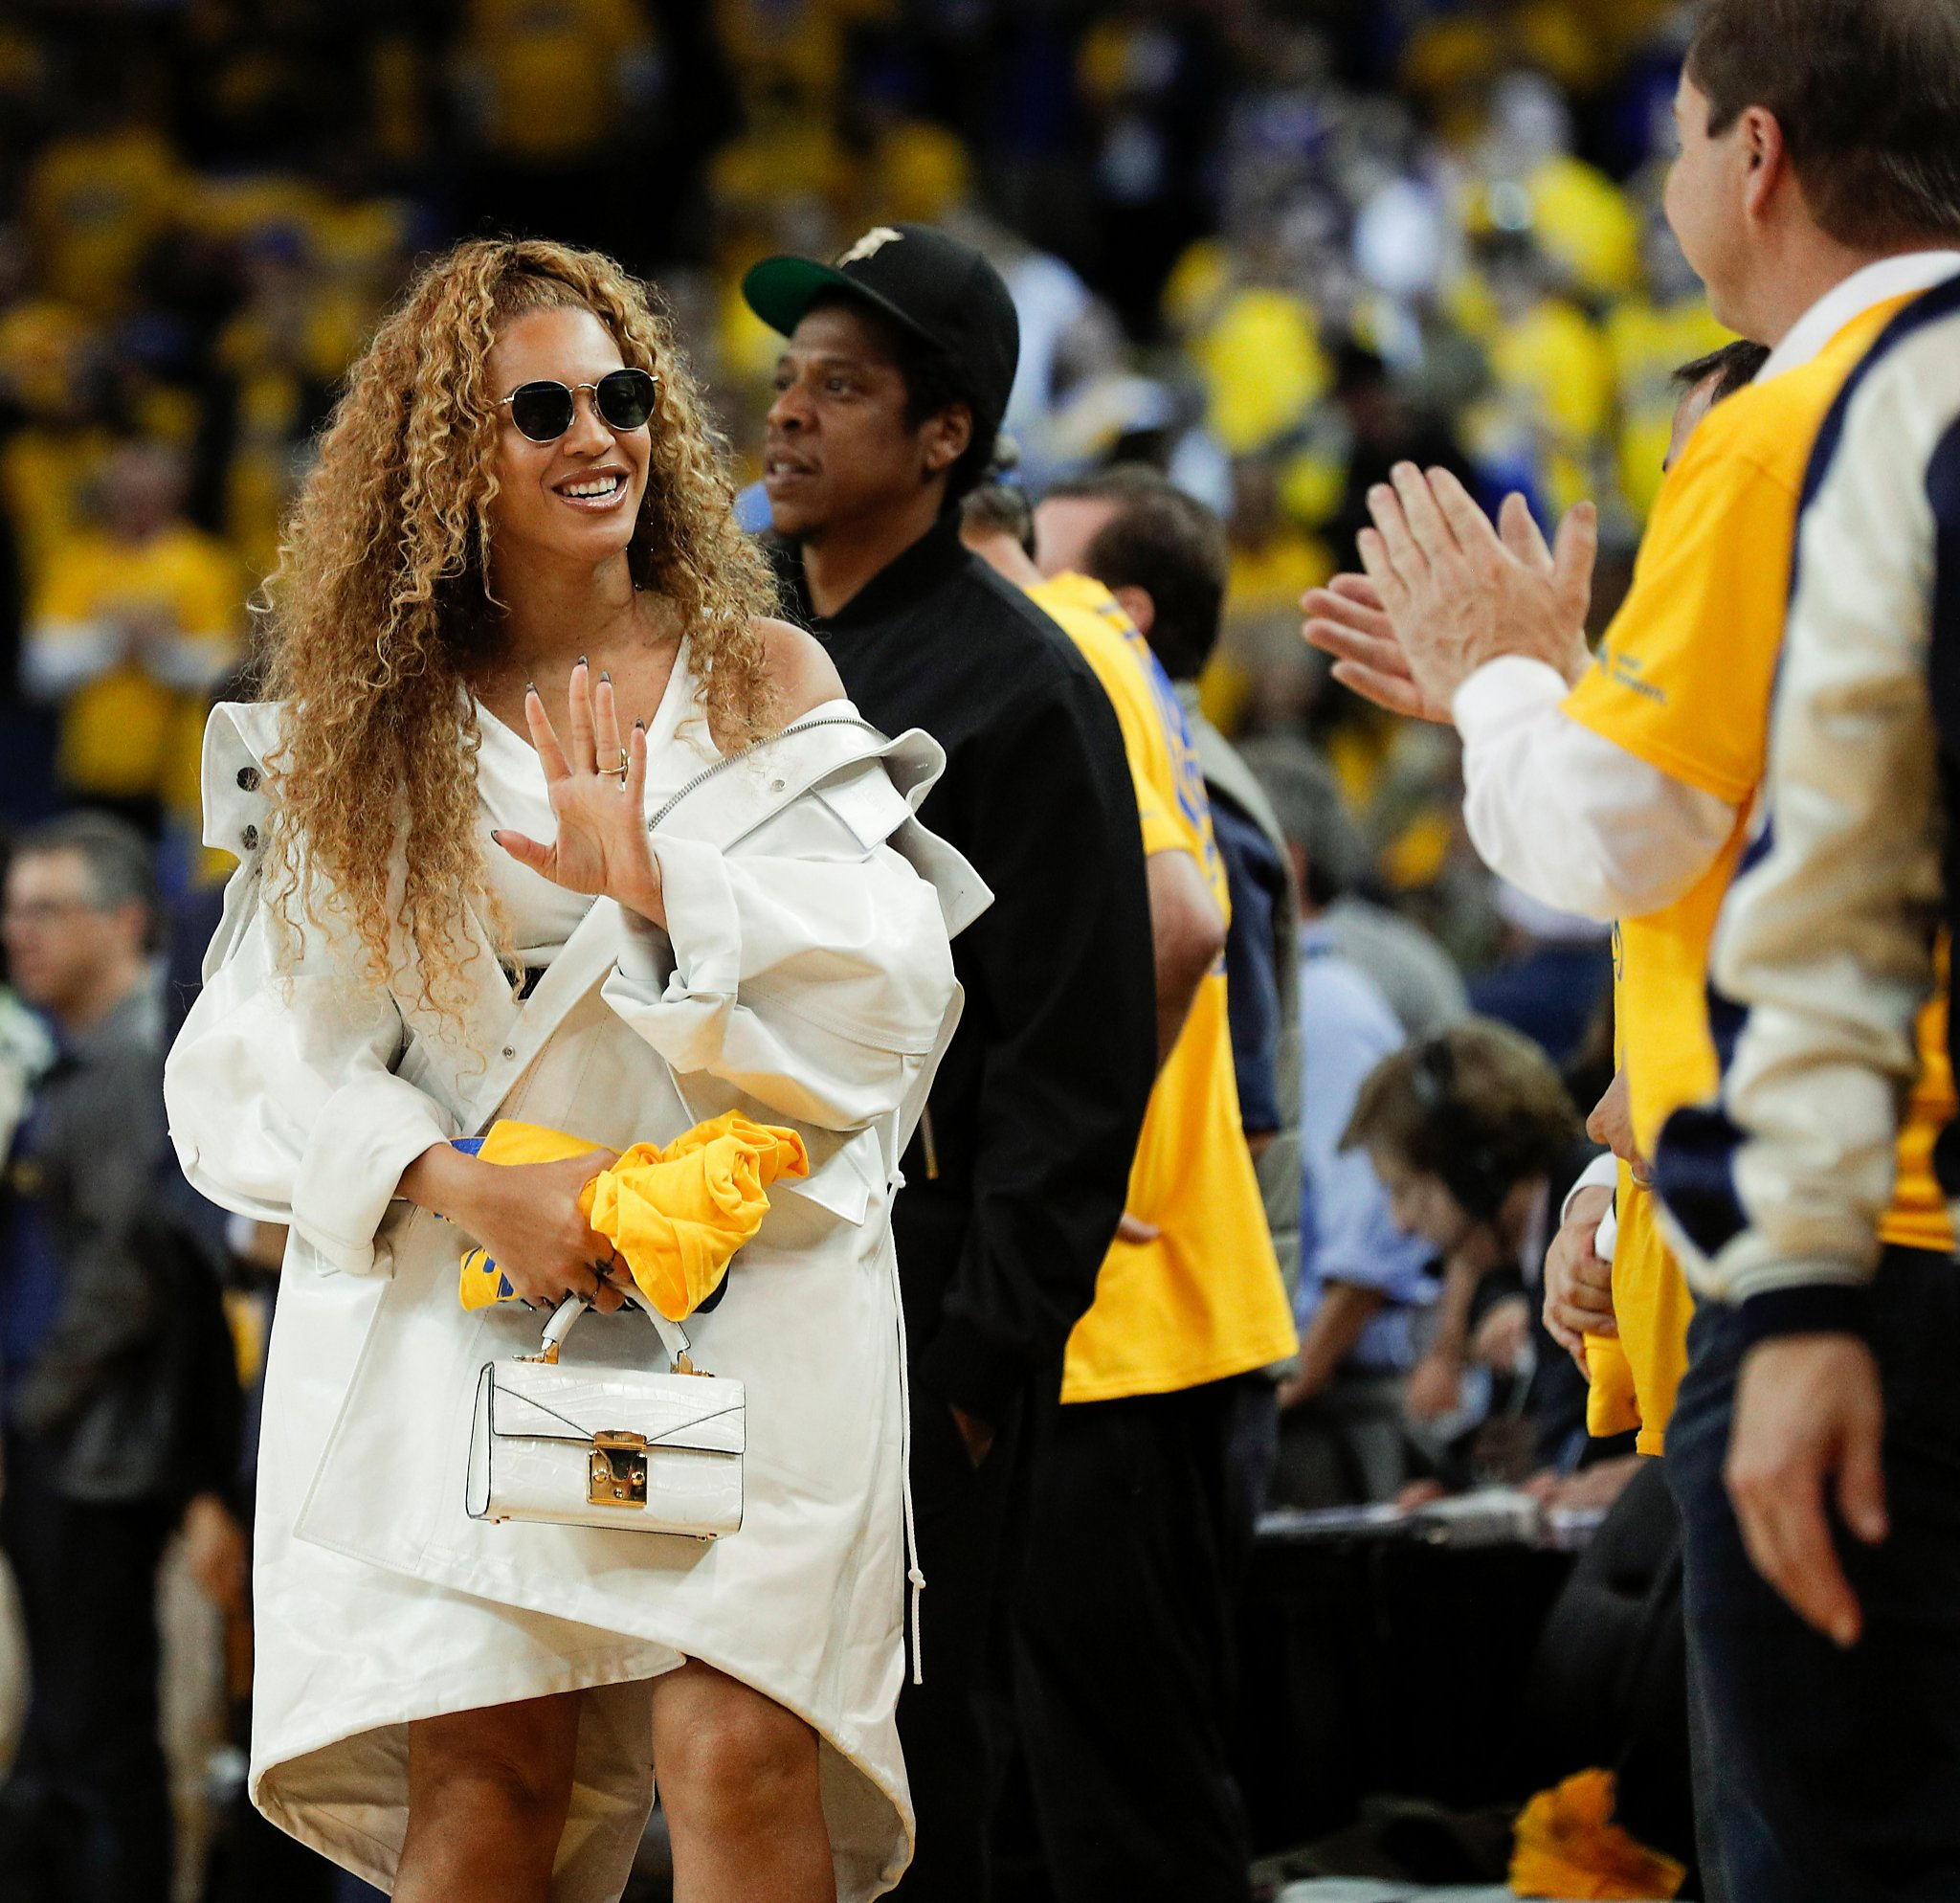 Warriors Come Out And Play Golden State: Celebrities On The Sidelines Of The Warriors' 2018 Playoff